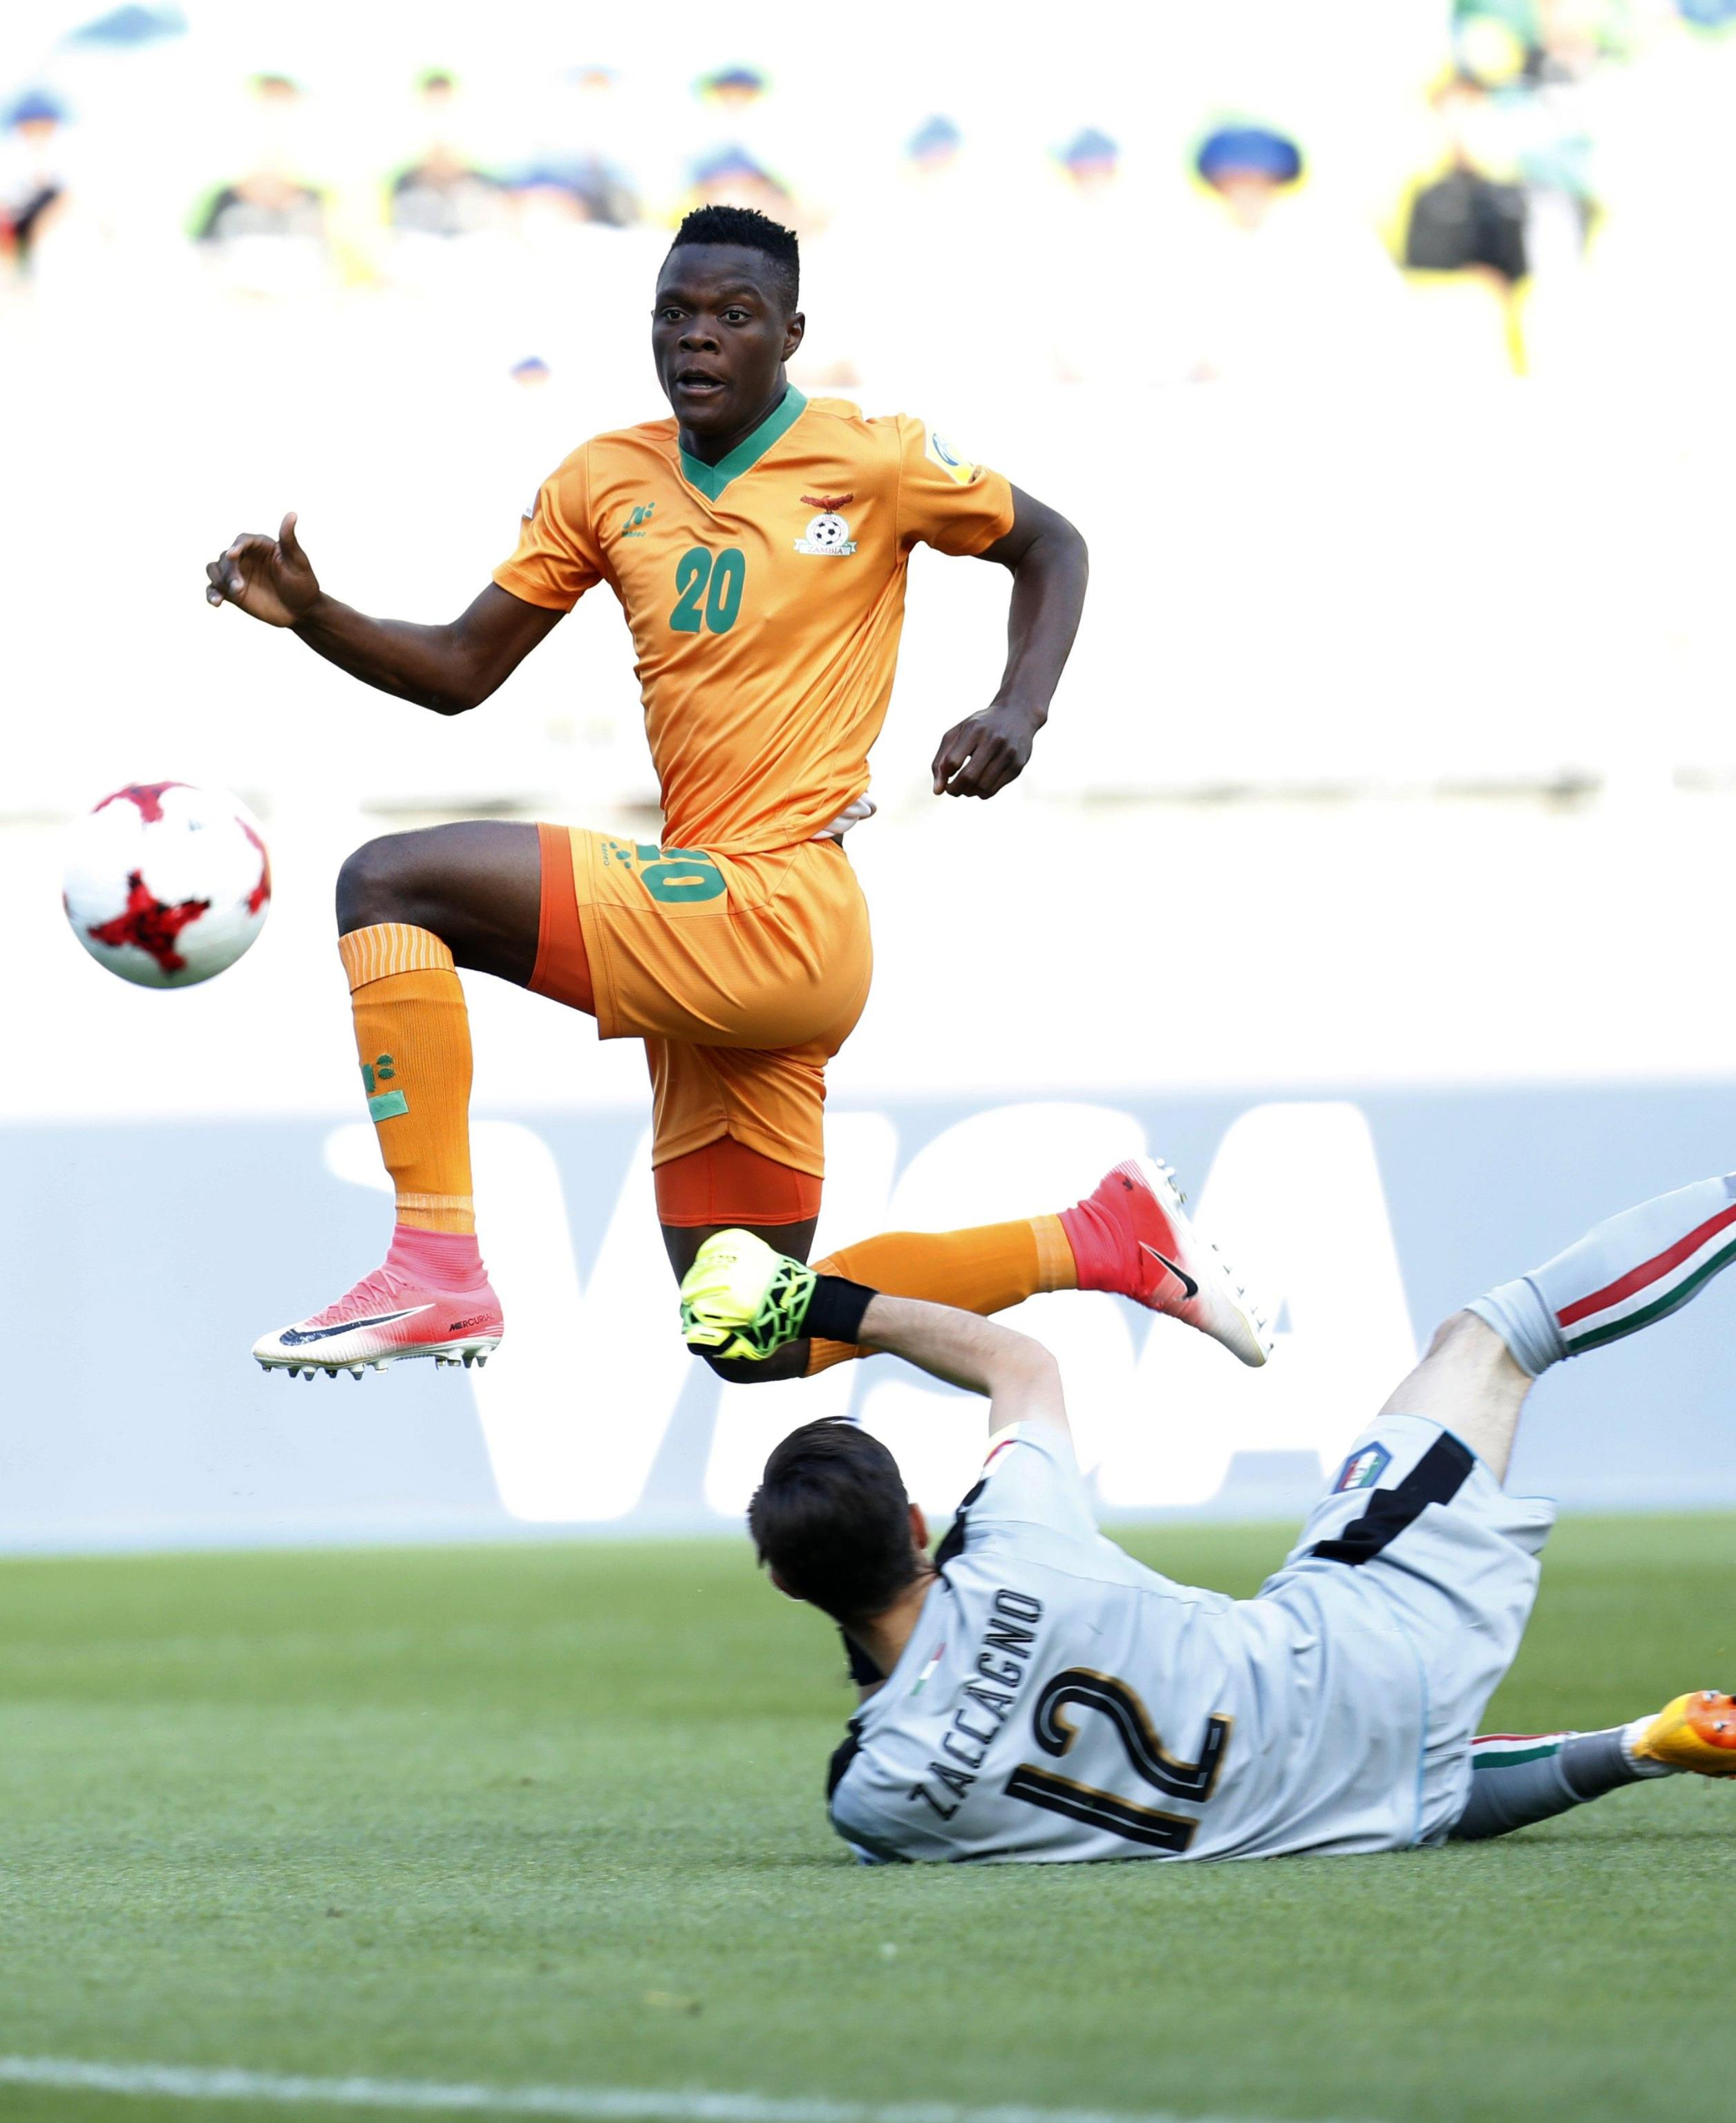 epa06011309 Patson Daka (L) of Zambia in action before scoring against goalkeeper Andrea Zaccagno of Italy during the quarterfinal match of the FIFA U-20 World Cup 2017 between the Italy and Zambia in Suwon World Cup Stadium, South Korea, 05 June 2017. EPA/JEON HEON-KYUN